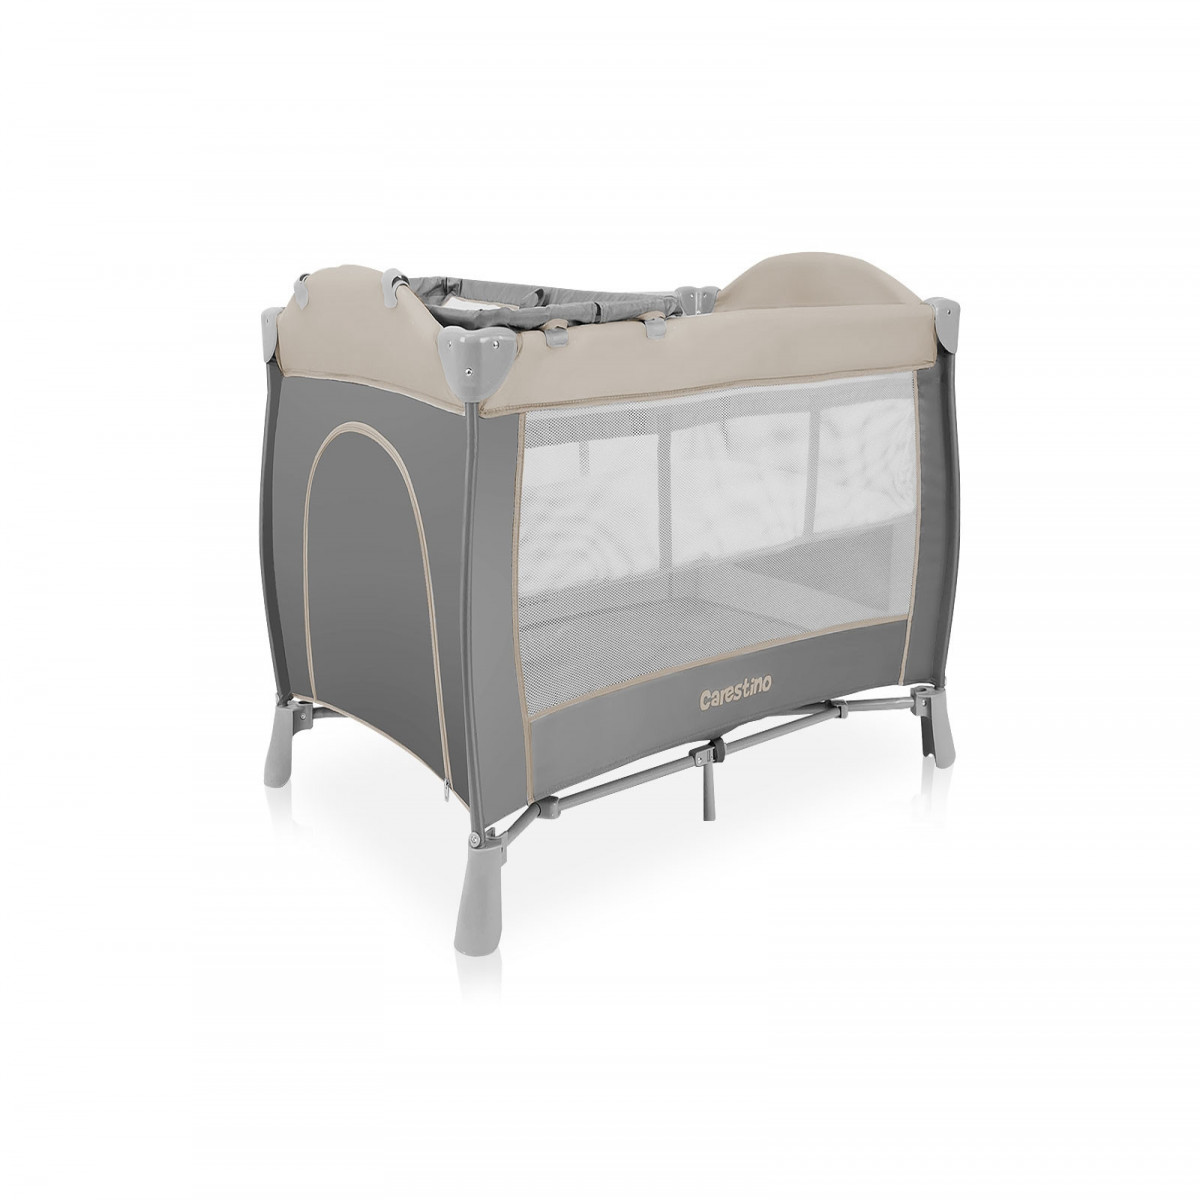 Practicuna Eco  Carestino beige